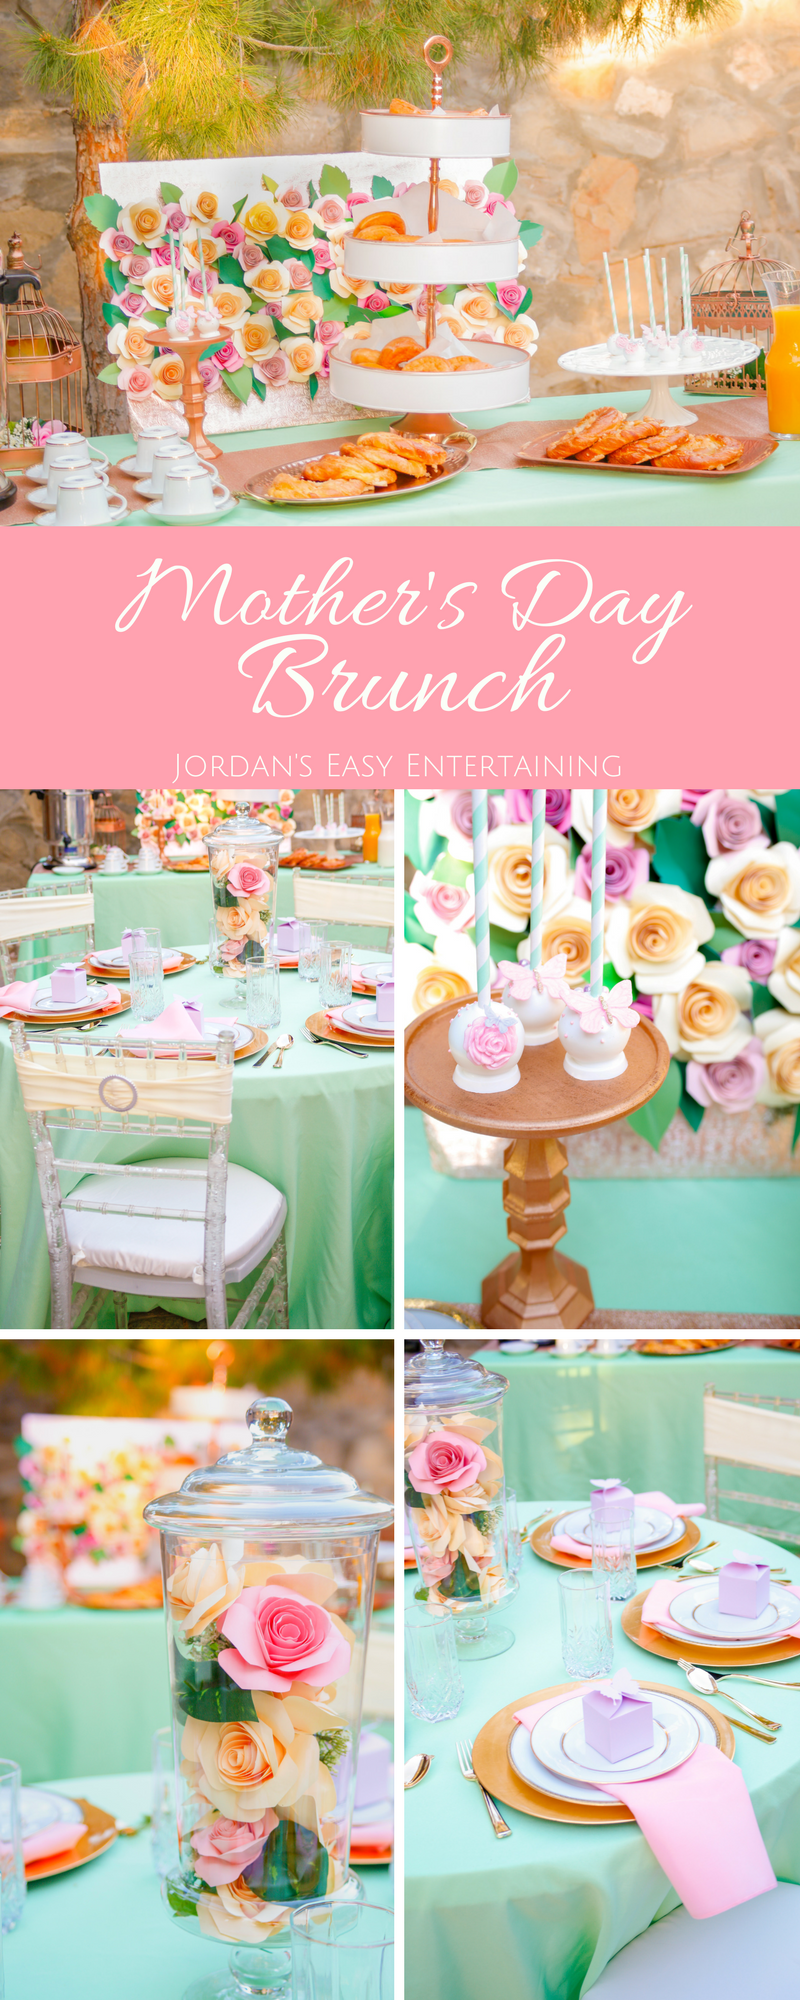 If your celebrating Mother's Day Brunch at home this year, here are some beautiful ideas for your party. Included are Mother's Day brunch table setting ideas and a Mother's Day brunch menu.